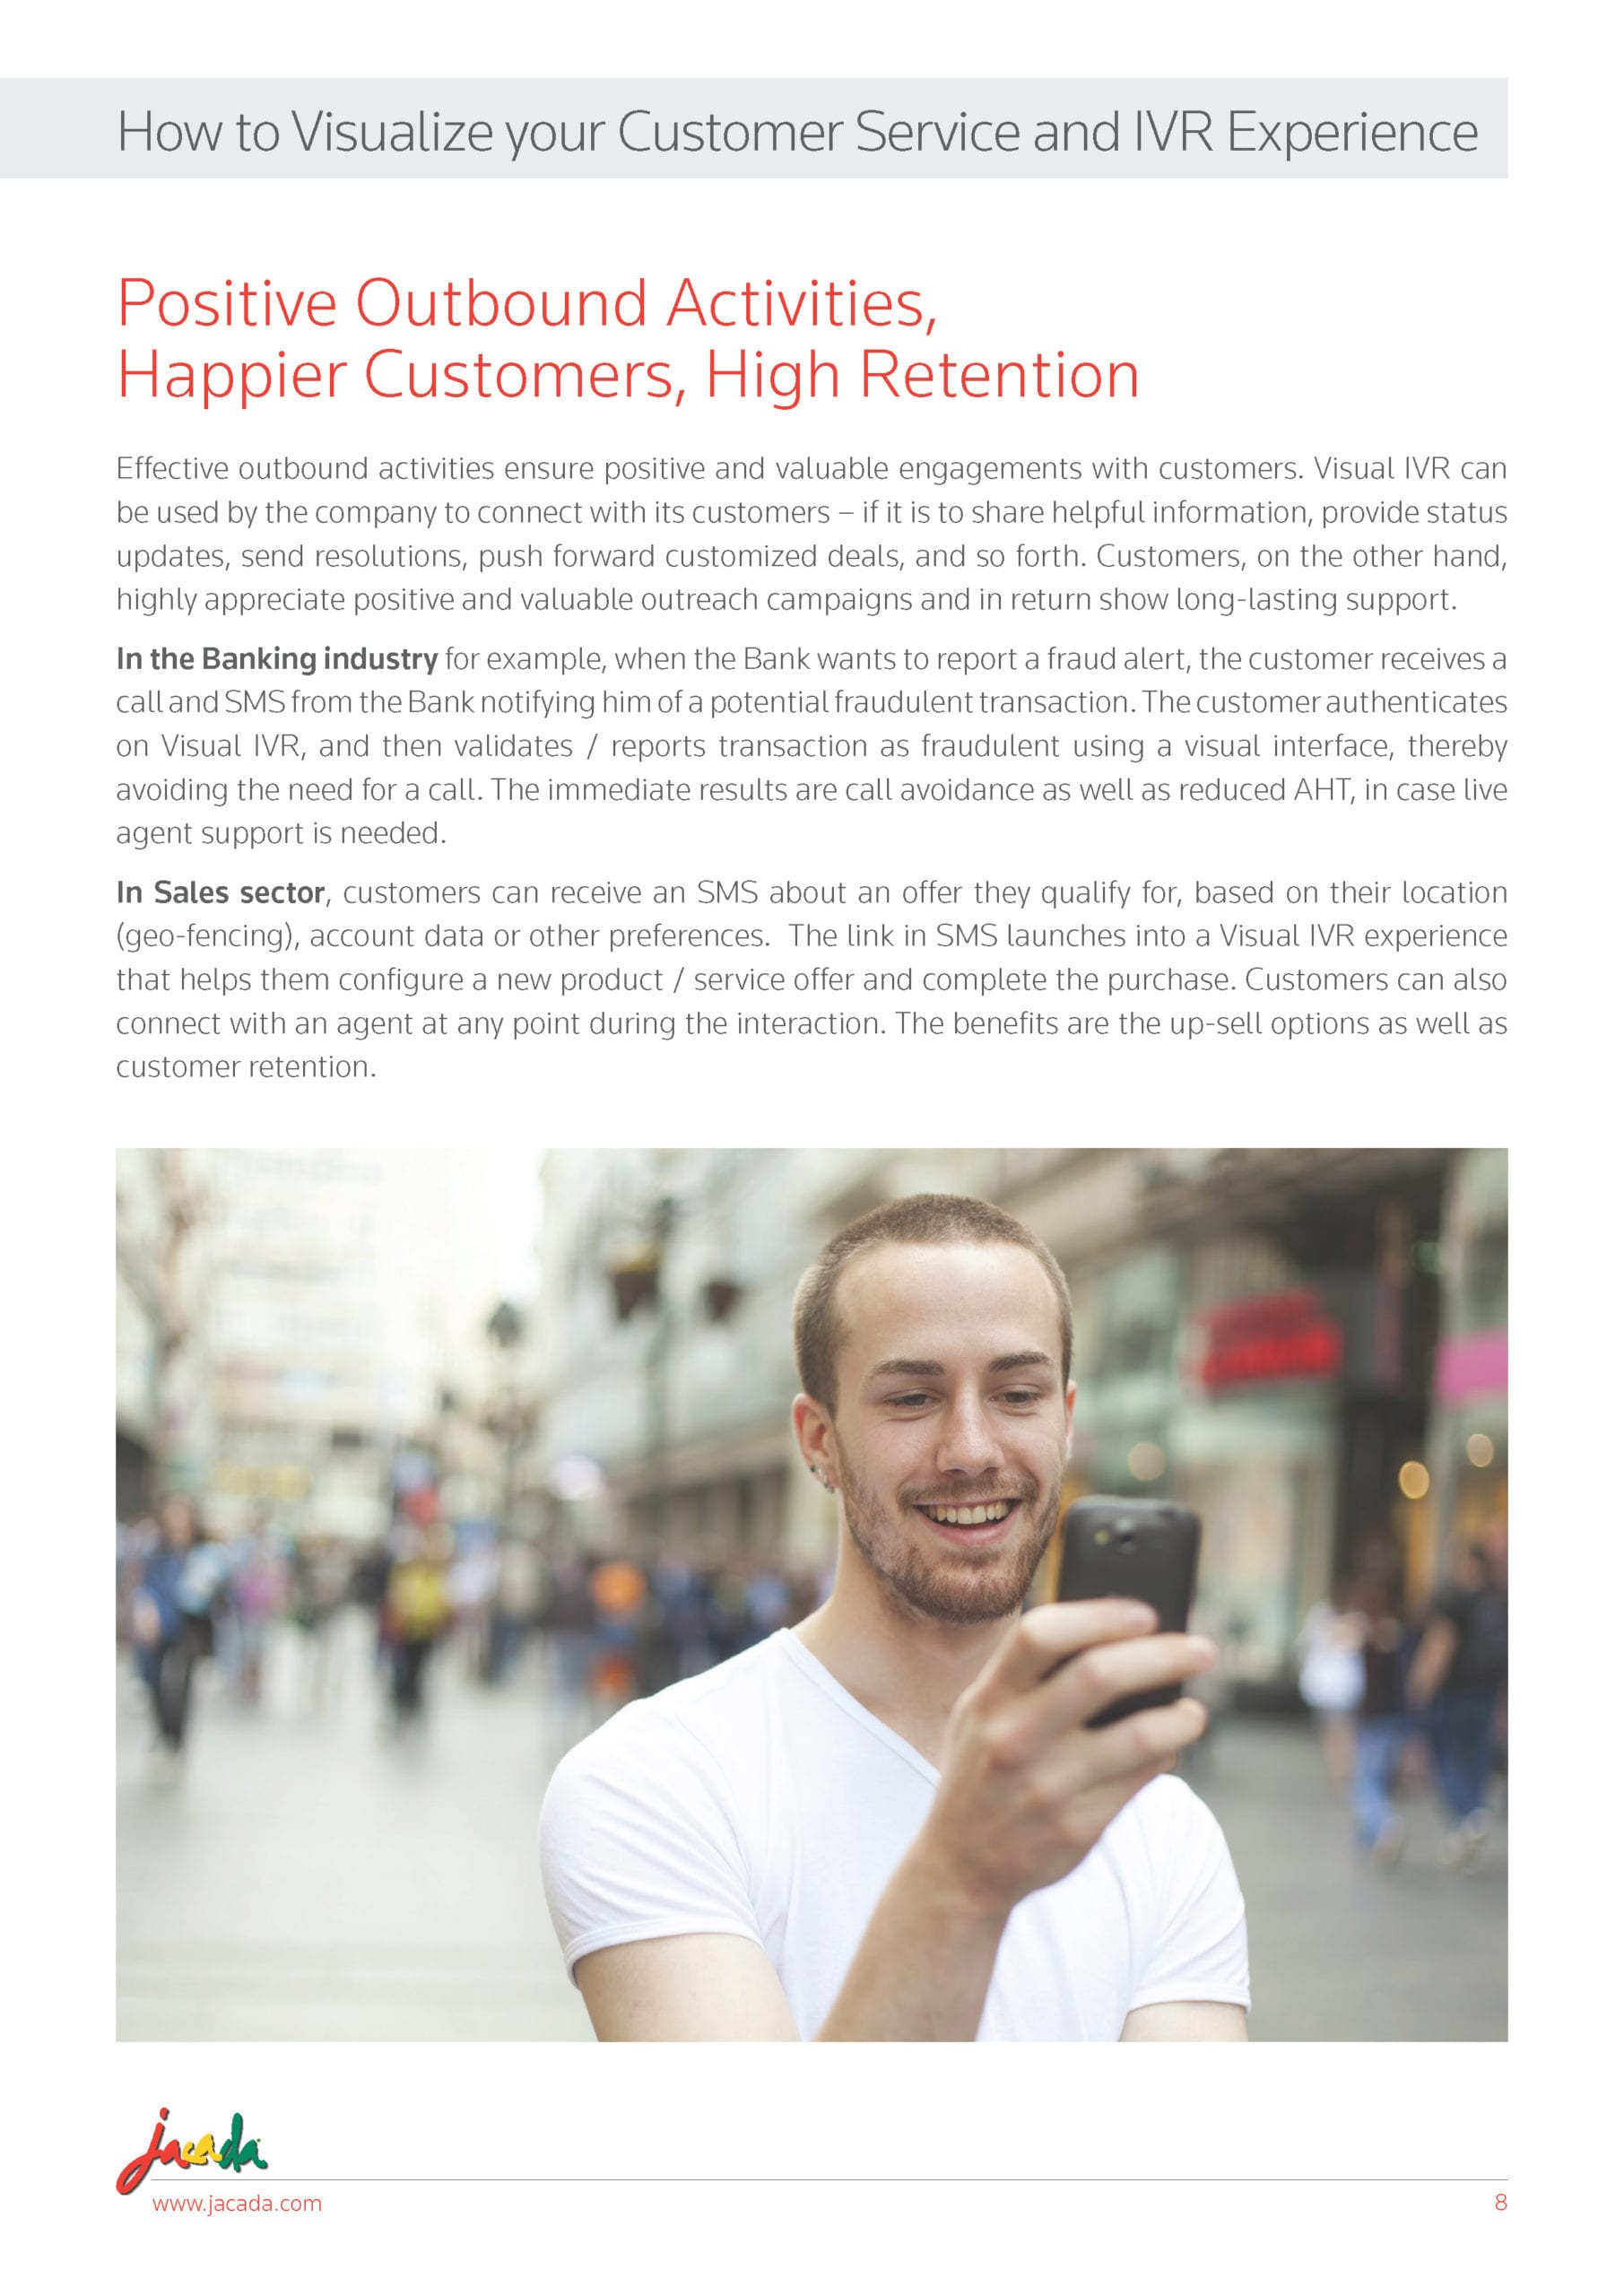 White_Paper_How_to_Visualize_your_customer_service_IVR_experience_Page_11_Page_08a